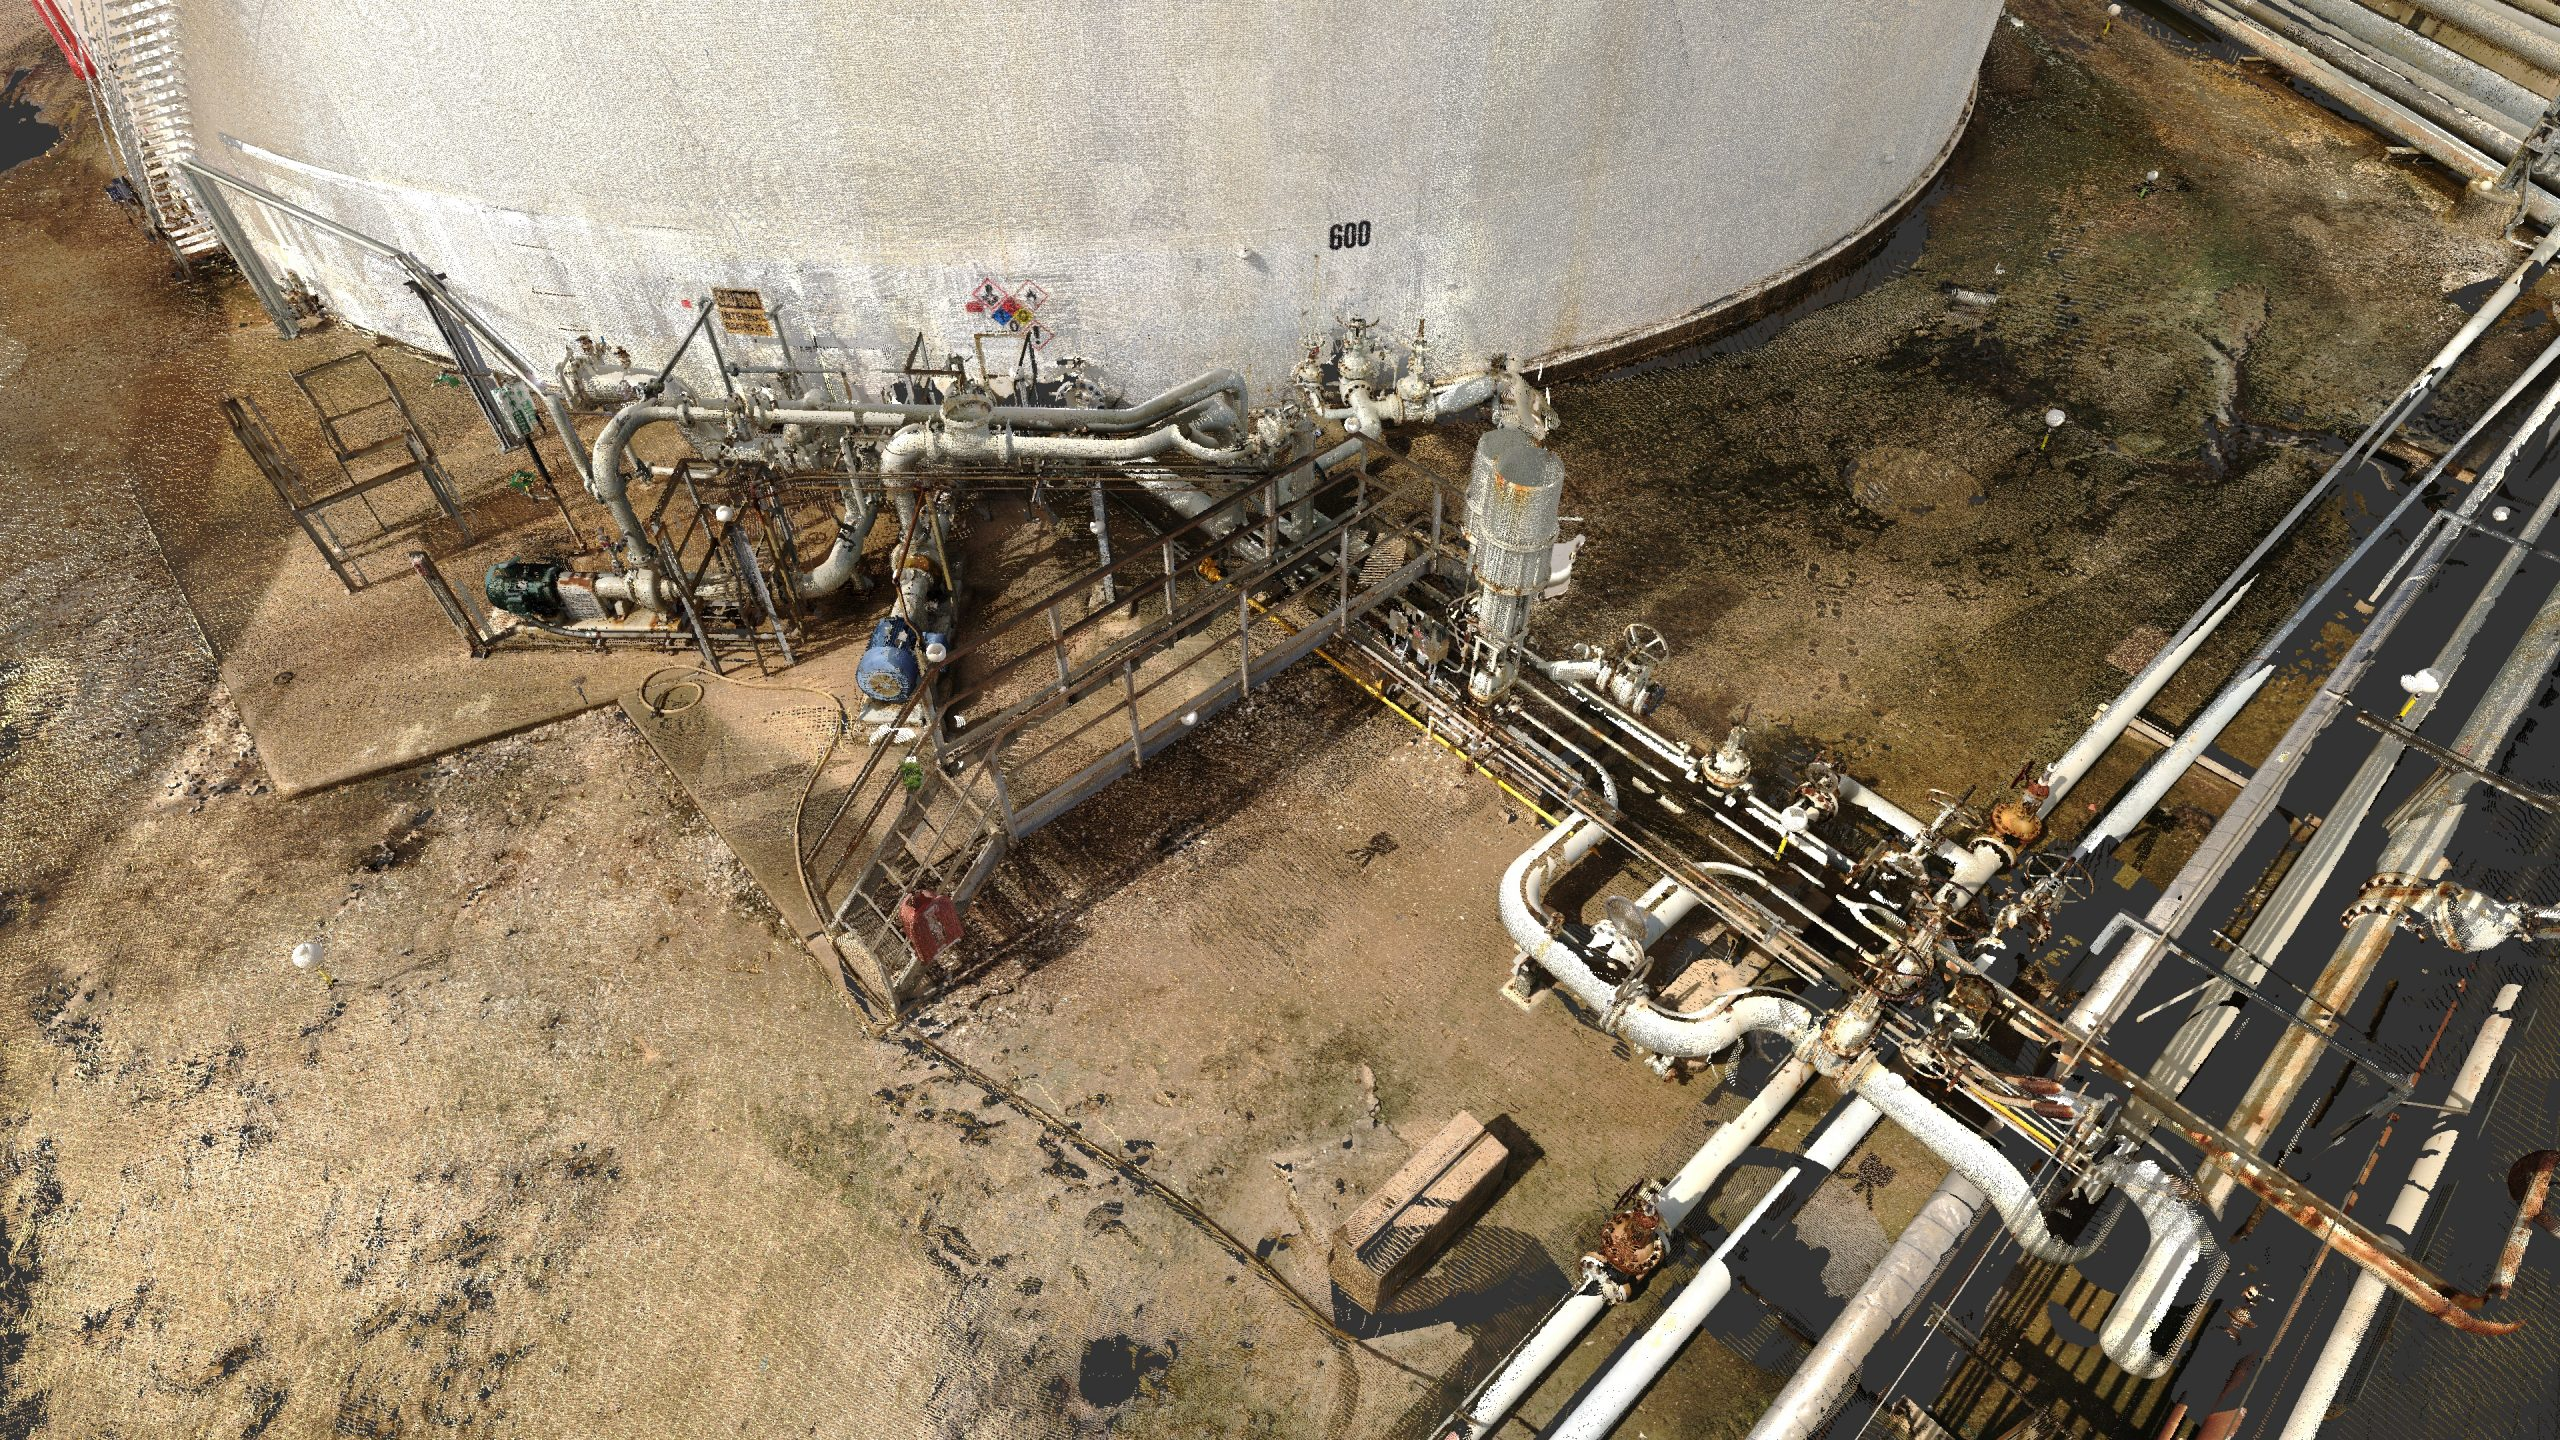 Point cloud data of Oil Storage Tank and Pipework